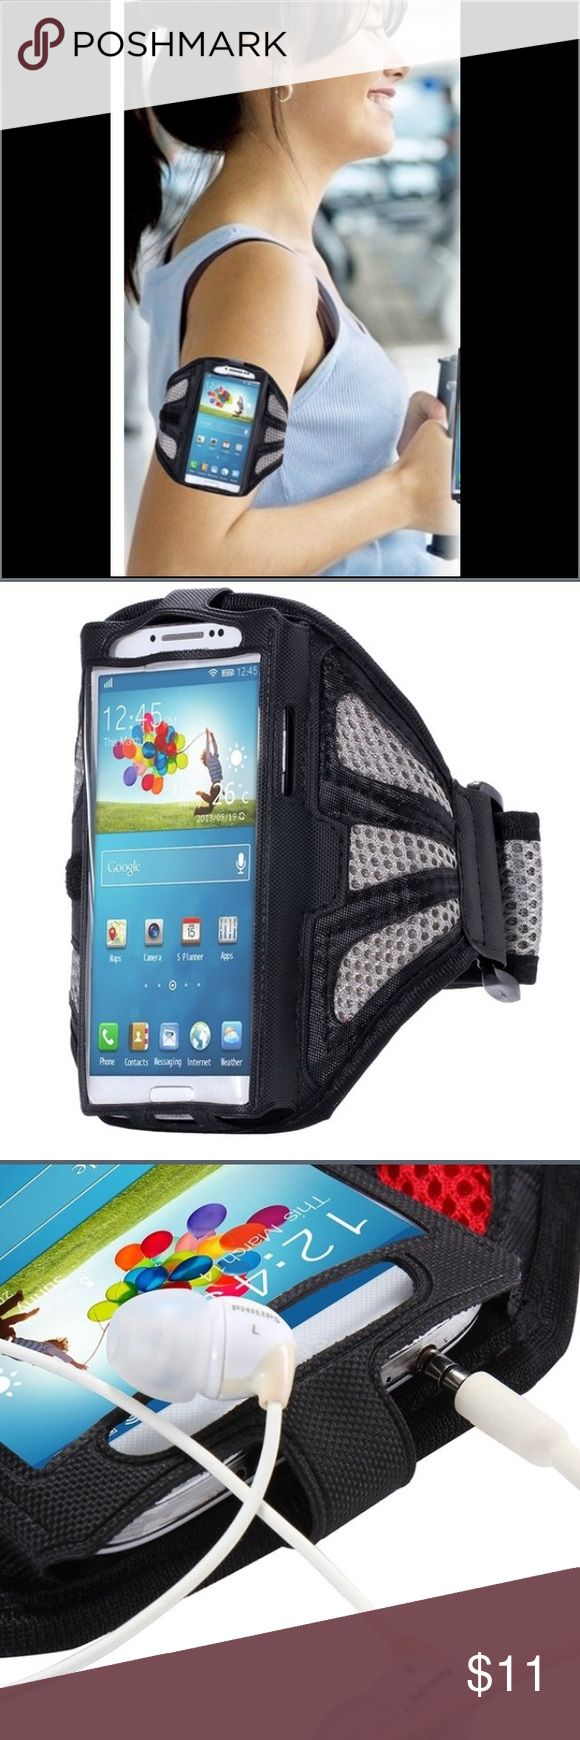 Sport Armband Bag Case For cellphones Fashion Net Meshing Breathing Sport Armband Bag Case For Samsung Galaxy S7 / S6 / S5 / S6 Edge / A5 A7 A3 For iPhone 6 6S / 5S 5 5G 5C 4S 4 / 6 Plus / 6S Plus For HTC M7 M8 M9 For Sony Z3 Z4 Z2 For Xiaomi Mi3 Mi4 Redmi / Note For Huawei Acsend P7 P6 Mate 6 / Honor 6 3C  Sport Armband Bag Case For Samsung Galaxy S7 / S6 / S5 / S6 Edge / A5 A7 A3 For iPhone 6 6S / 5S 5 5G 5C 4S 4 / 6 Plus / 6S Plus Accessories Phone Cases